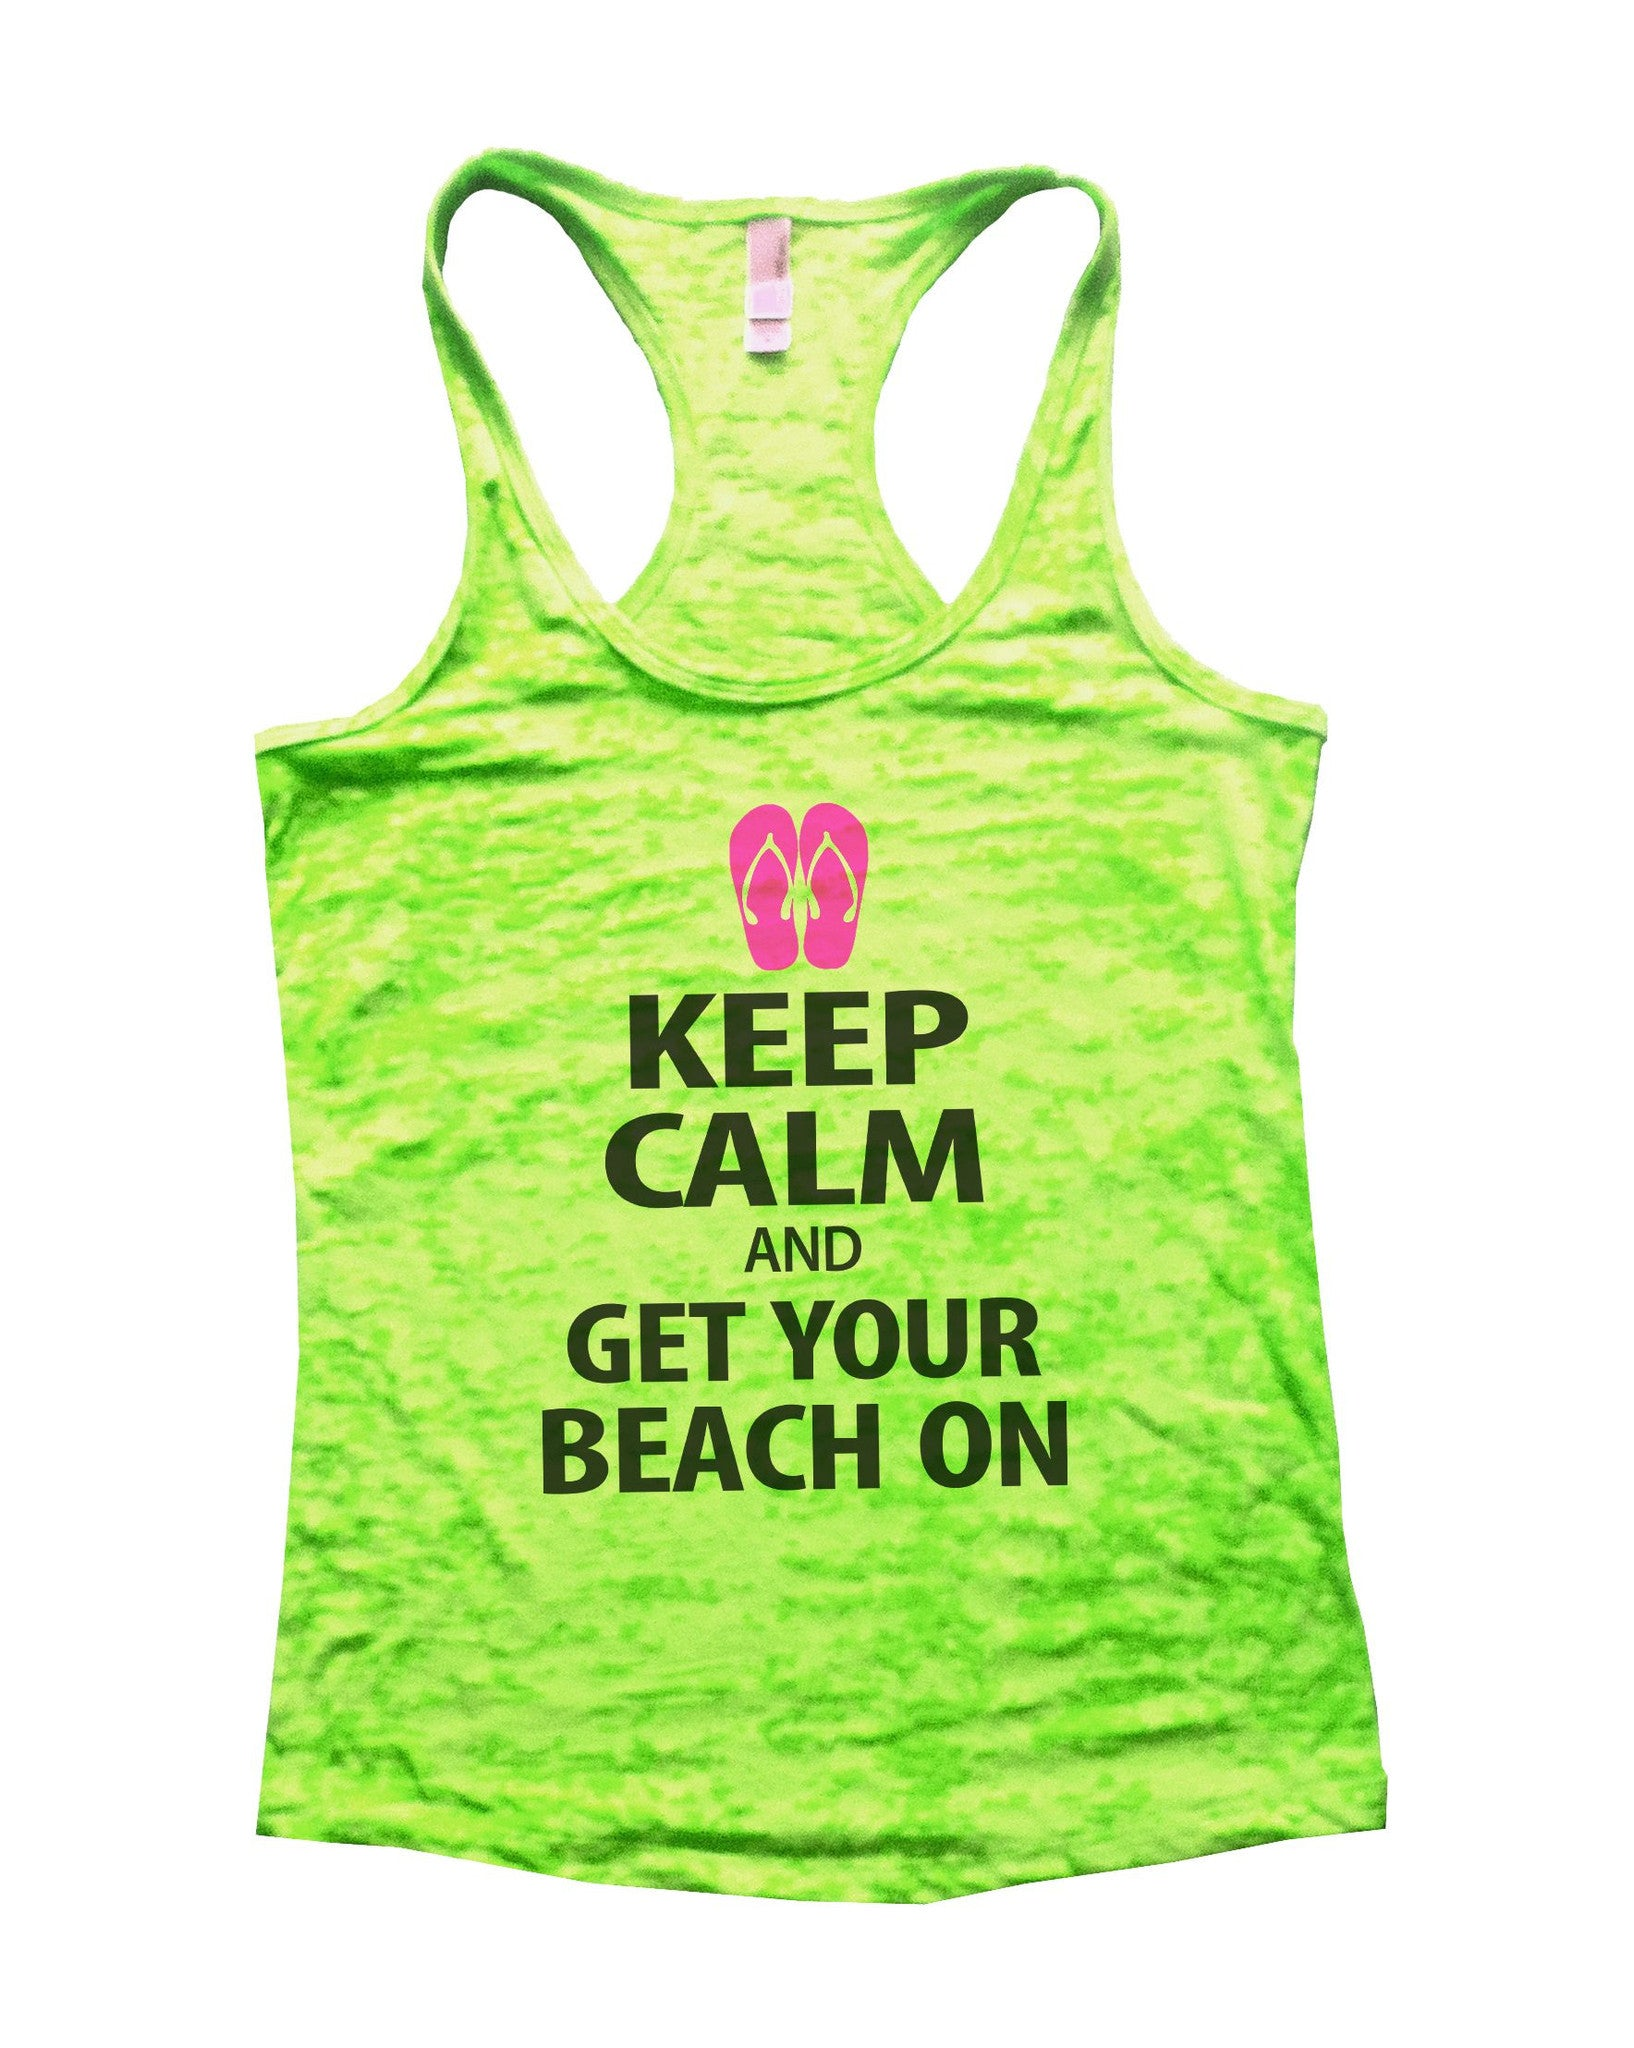 Keep Calm And Get Your Beach On Burnout Tank Top By BurnoutTankTops.com - 550 - Funny Shirts Tank Tops Burnouts and Triblends  - 2